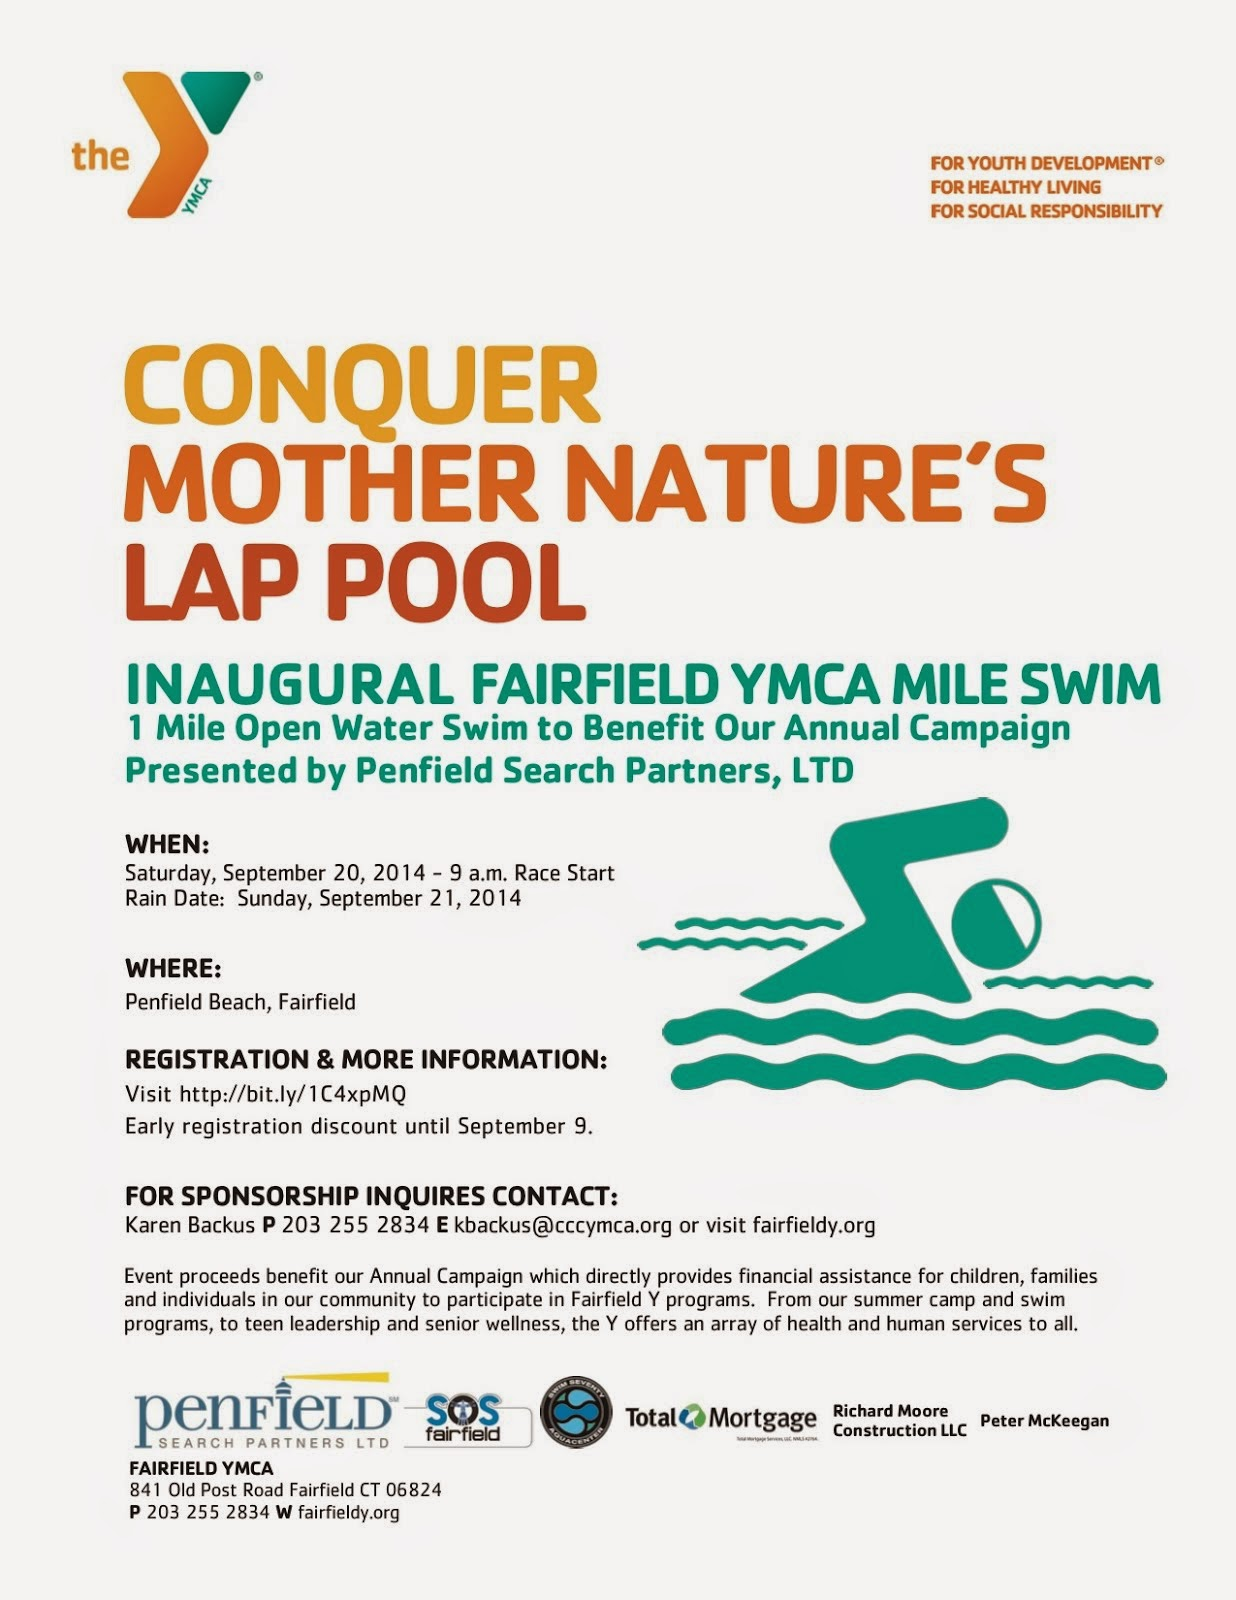 Fairfield YMCA Mile Swim